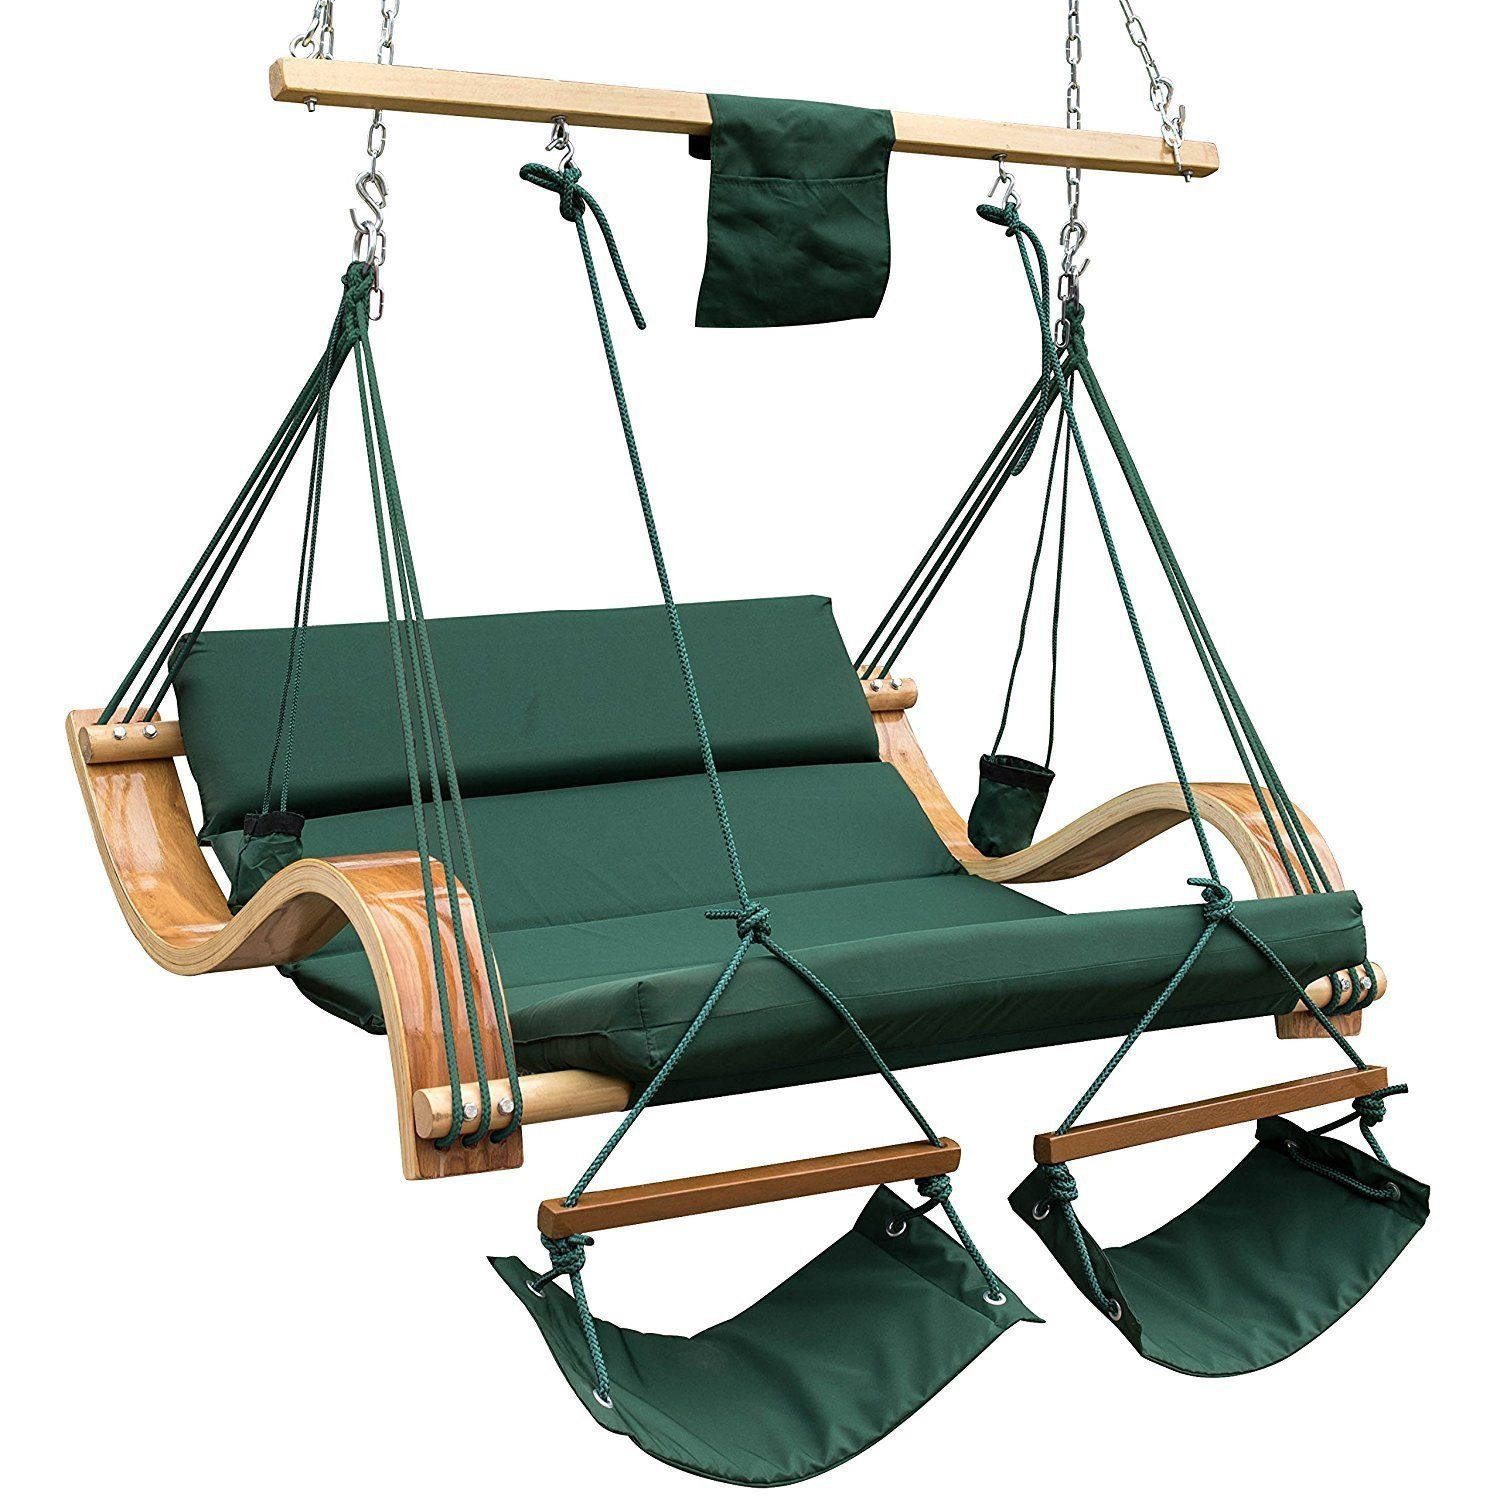 Two Person Deluxe Hanging Hammock Lounger Gogetglam